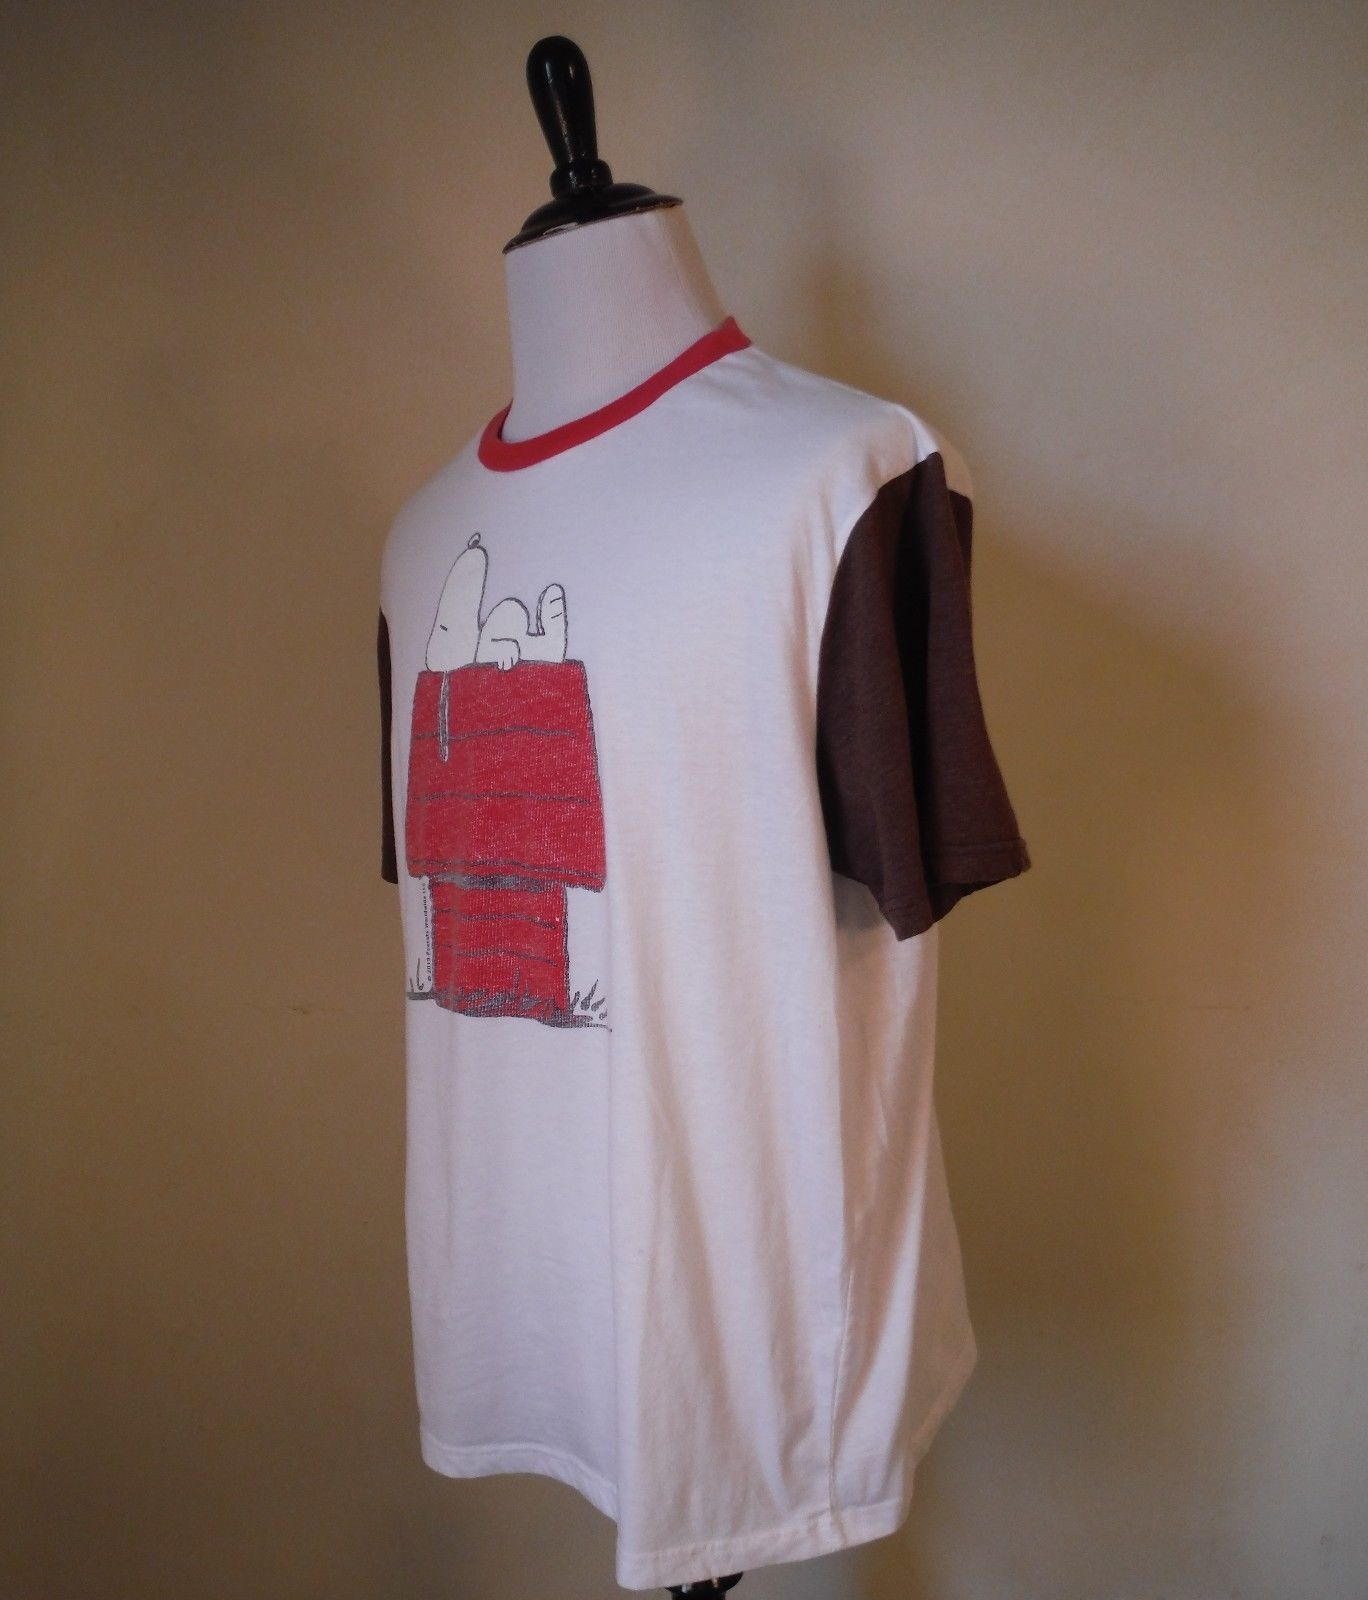 cf65c086 Peanuts Mens XL White/Brown/Red Snoopy Sleeping Dog House Graphic Tee T-